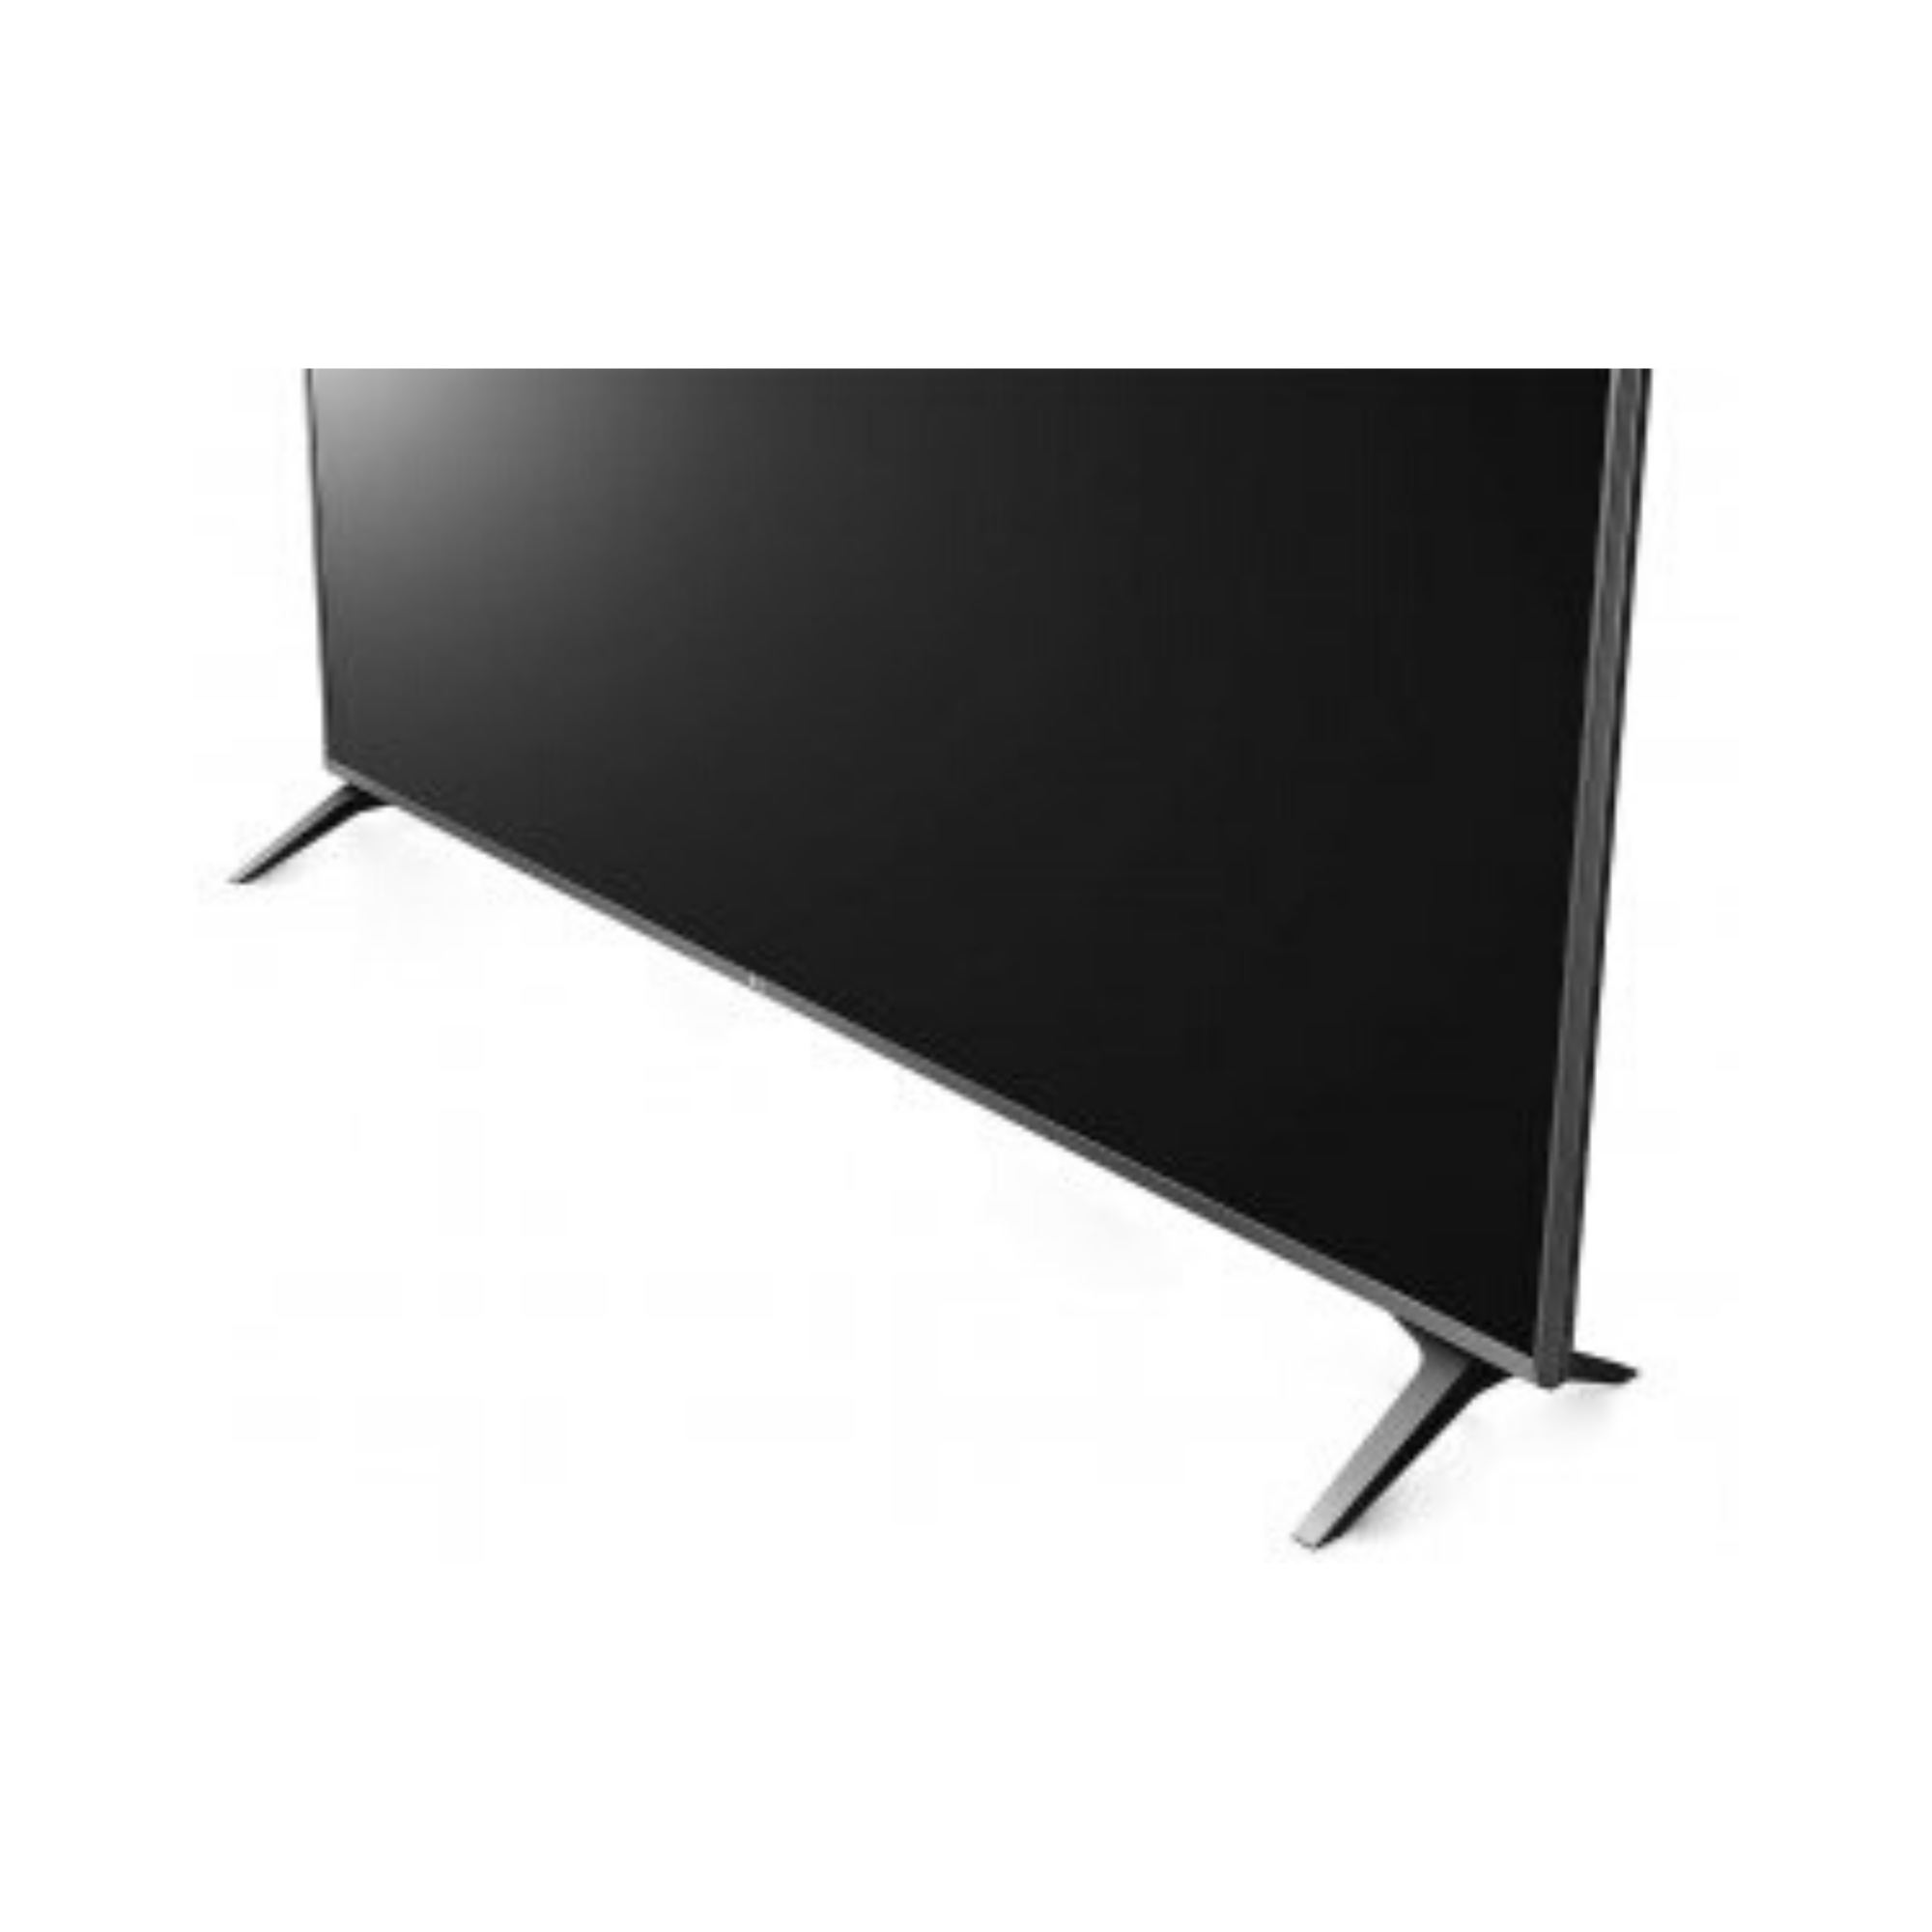 "LG 42LB6700  42"" 3D Full HD Cinema Smart LED"